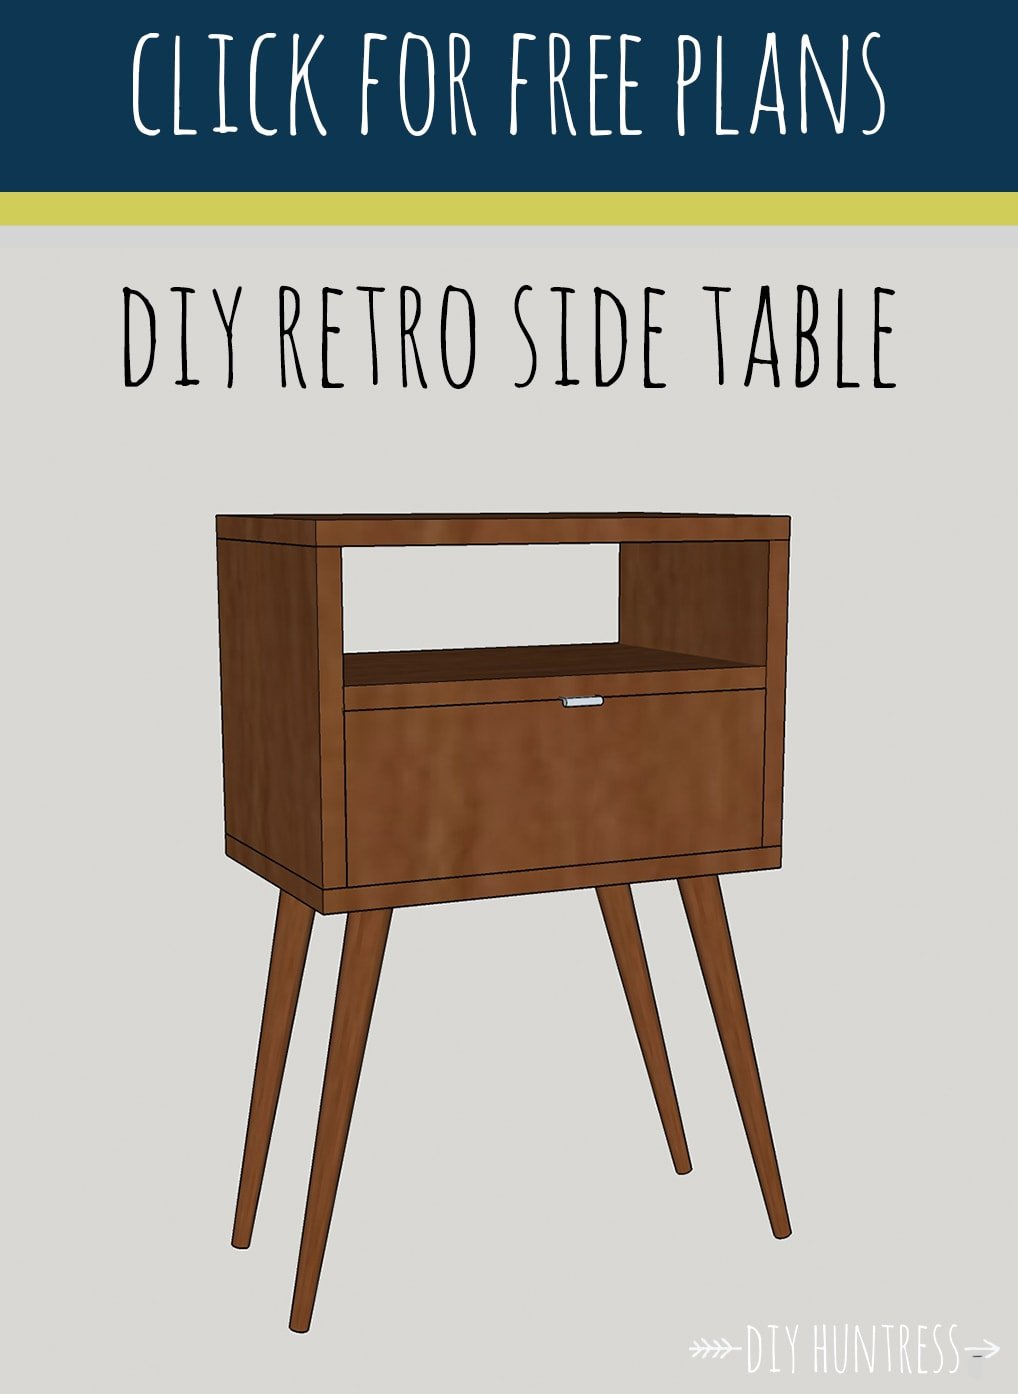 DIY Retro Side Table Huntress